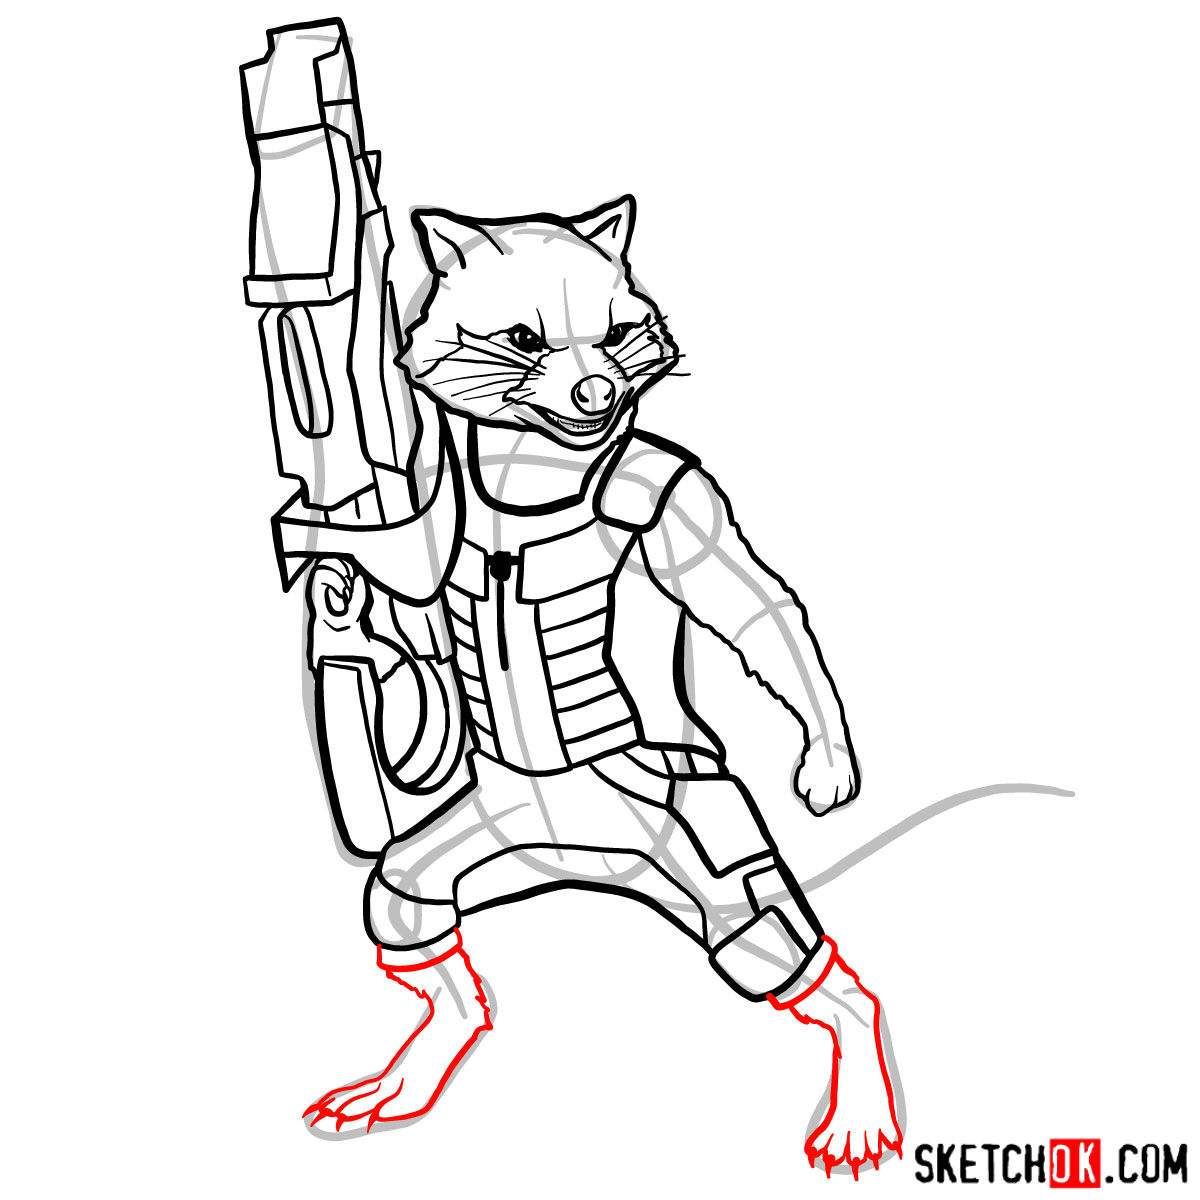 How to draw Rocket Raccoon - step 12